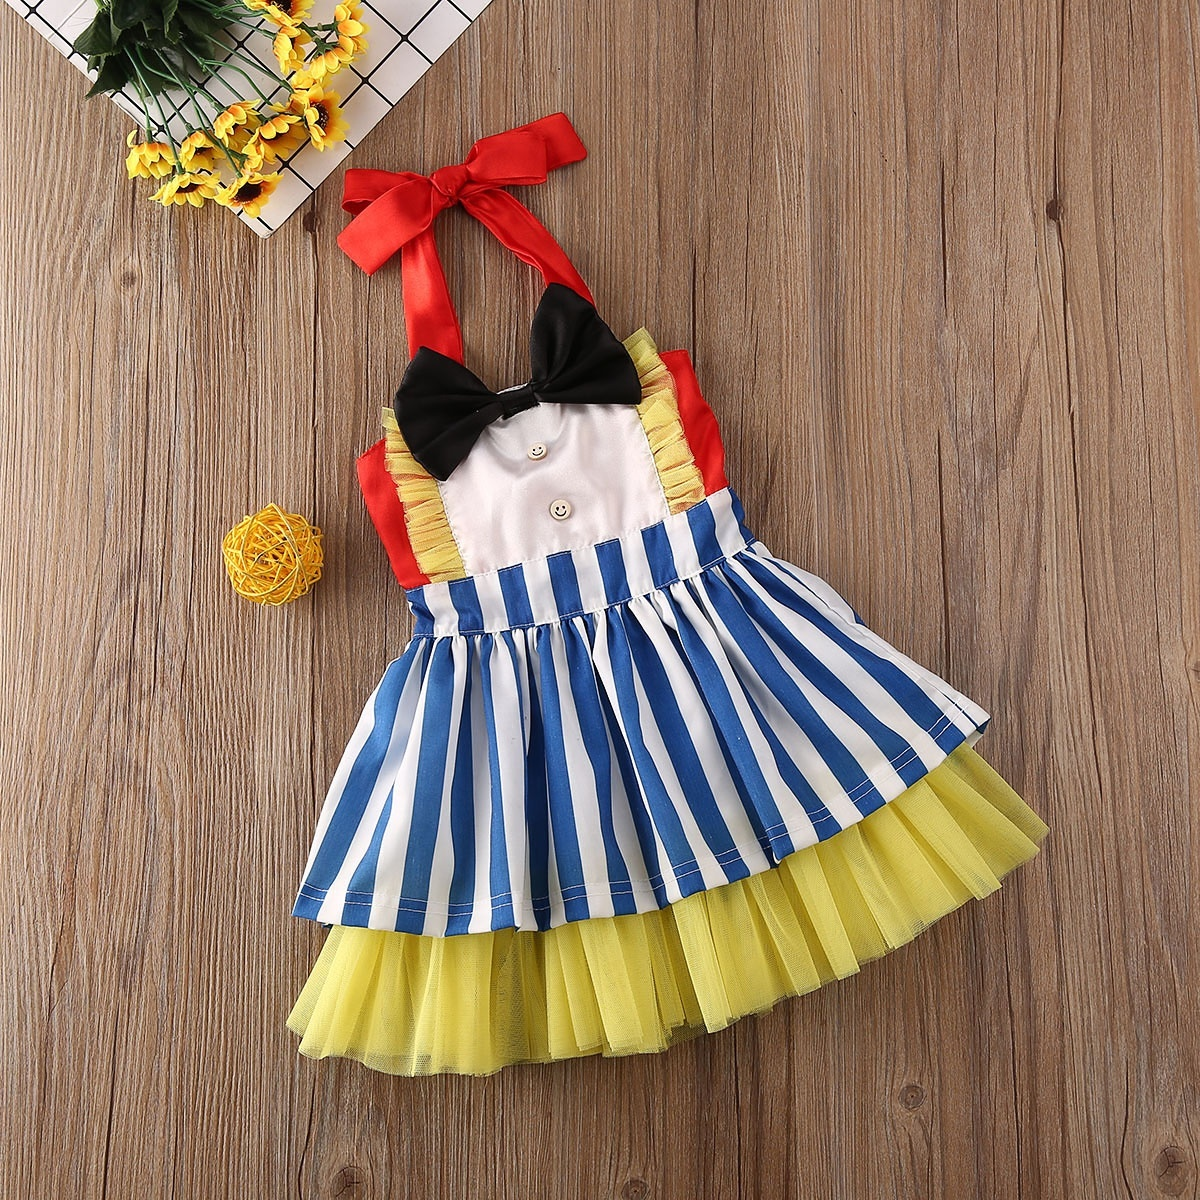 Toddler Dresses Baby Girls New Years Birthday Party Clothes Kid Girl Bow Lace Tutu Dress Walmart Canada